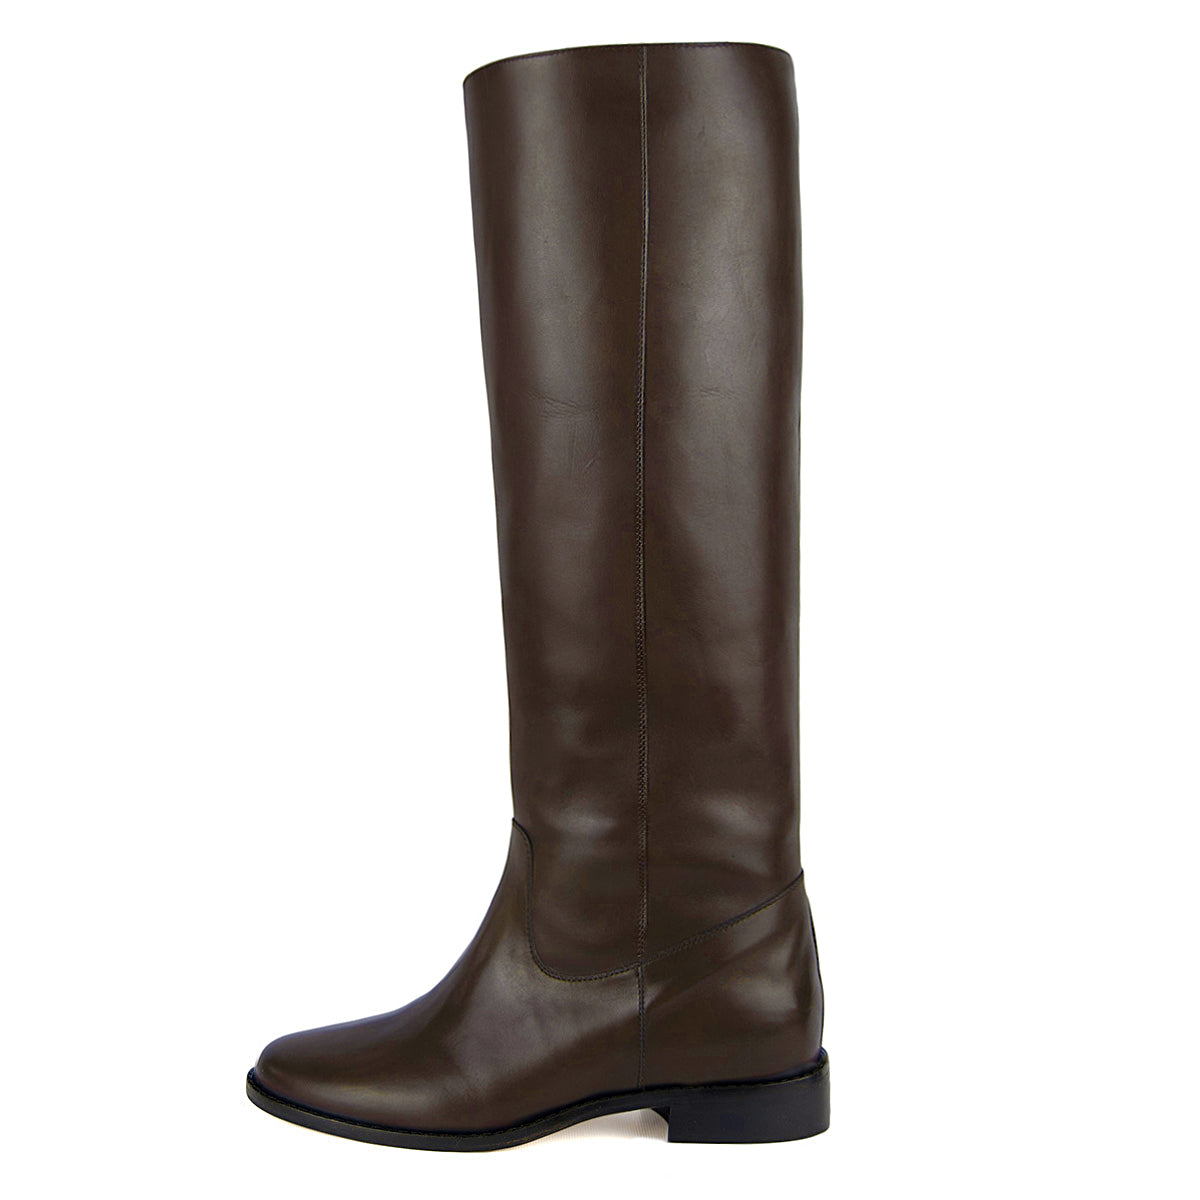 Dalia, dark brown - wide calf boots, large fit boots, calf fitting boots, narrow calf boots